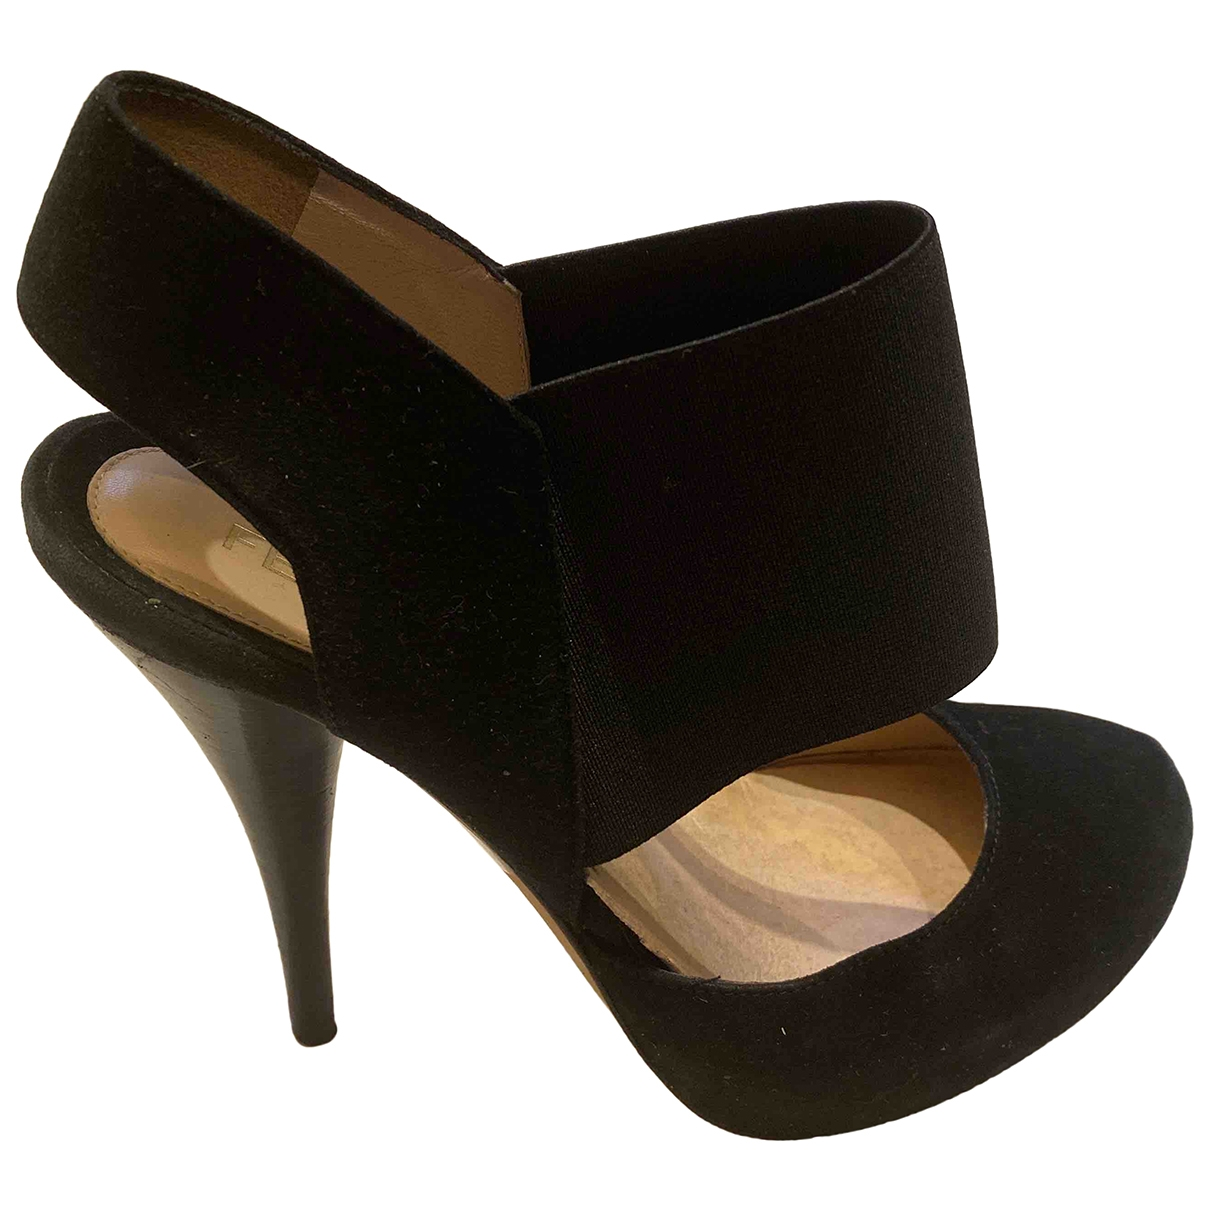 Fendi \N Black Suede Heels for Women 36 EU